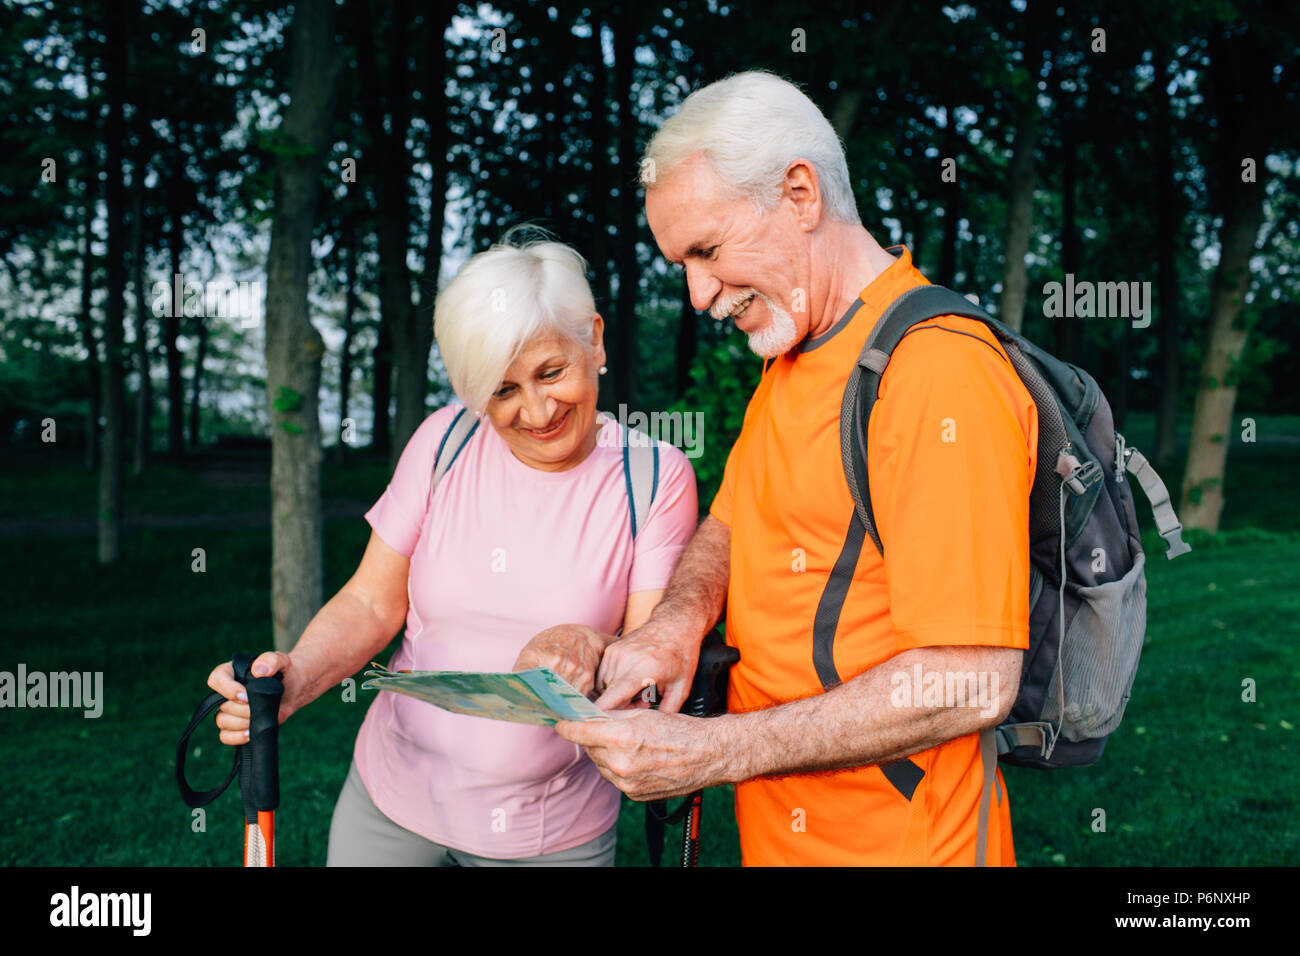 elderly couple hikers checking map in woods - Stock Image